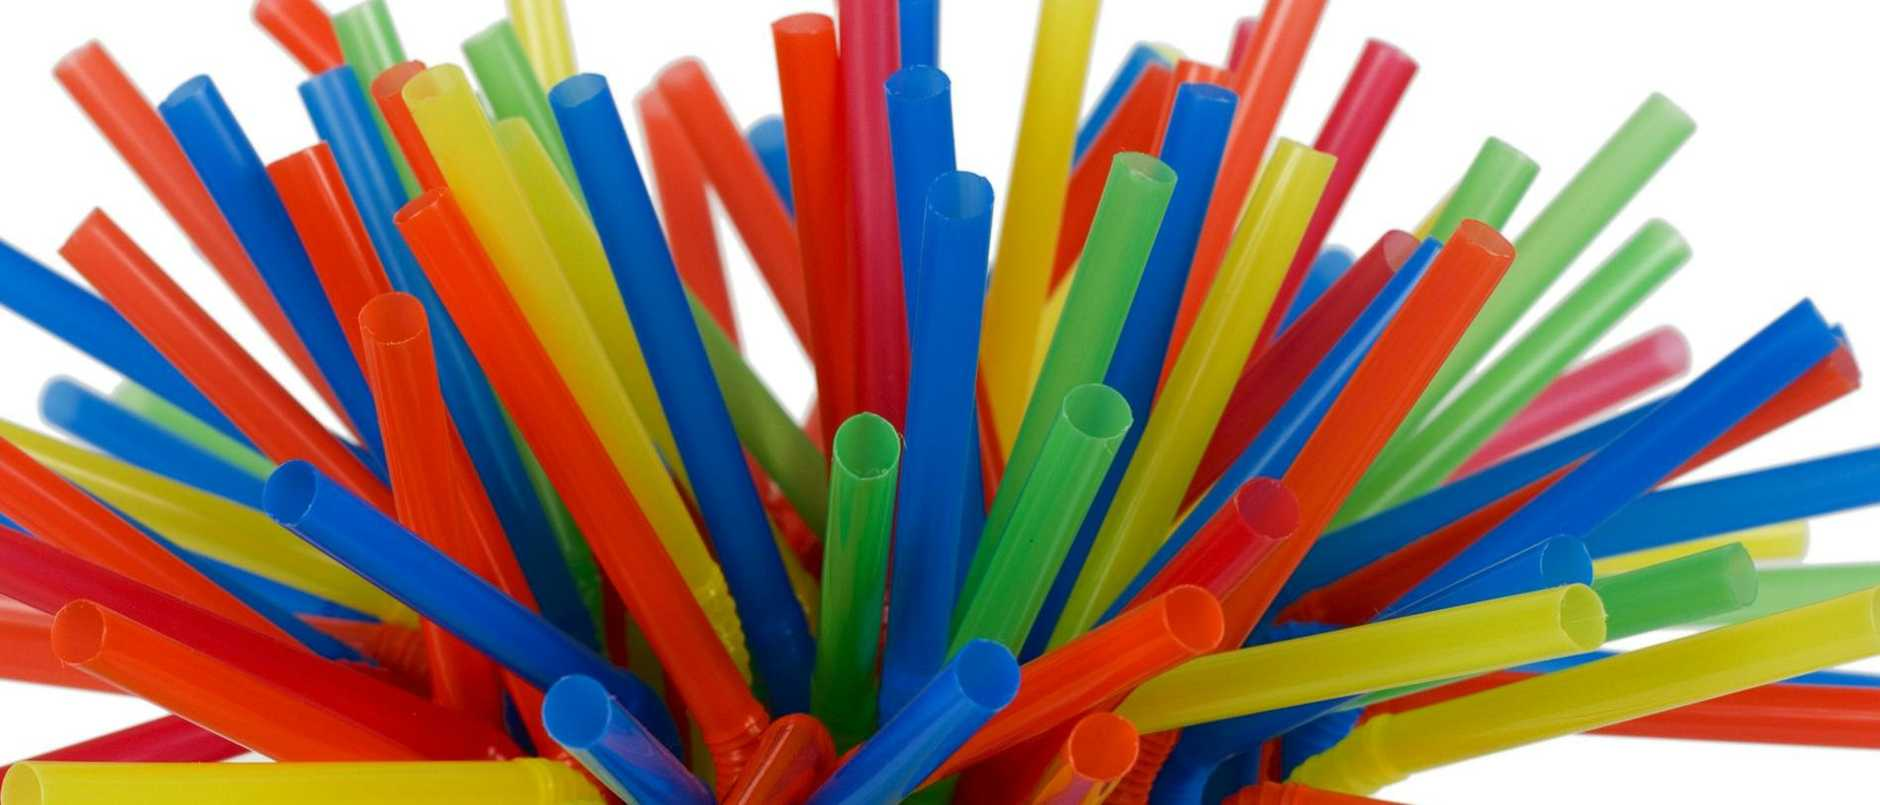 Tight grouping of colorful straws